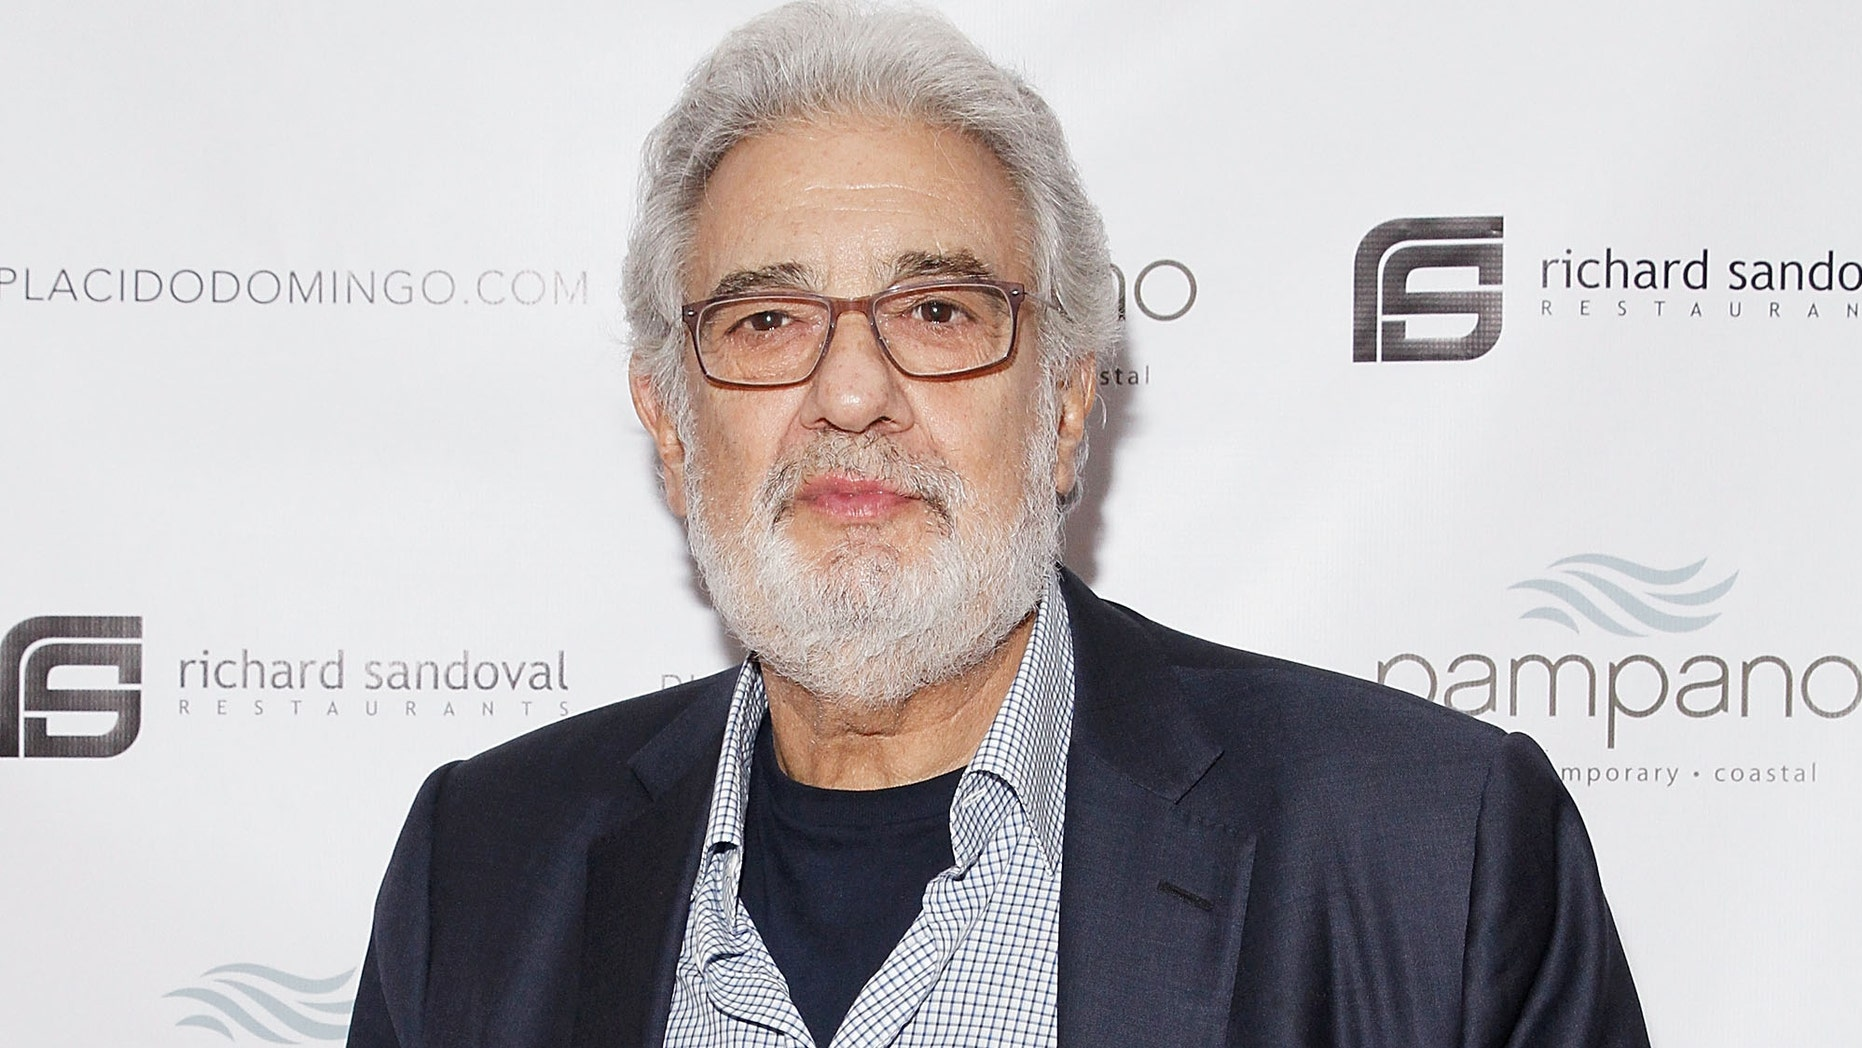 NEW YORK, NY - MARCH 11:  Spanish Opera singer Placido Domingo attends the Pampano Anniversary at Pampano Restaurant on March 11, 2014 in New York City.  (Photo by Mireya Acierto/Getty Images for Richard Sandoval Restaurants)